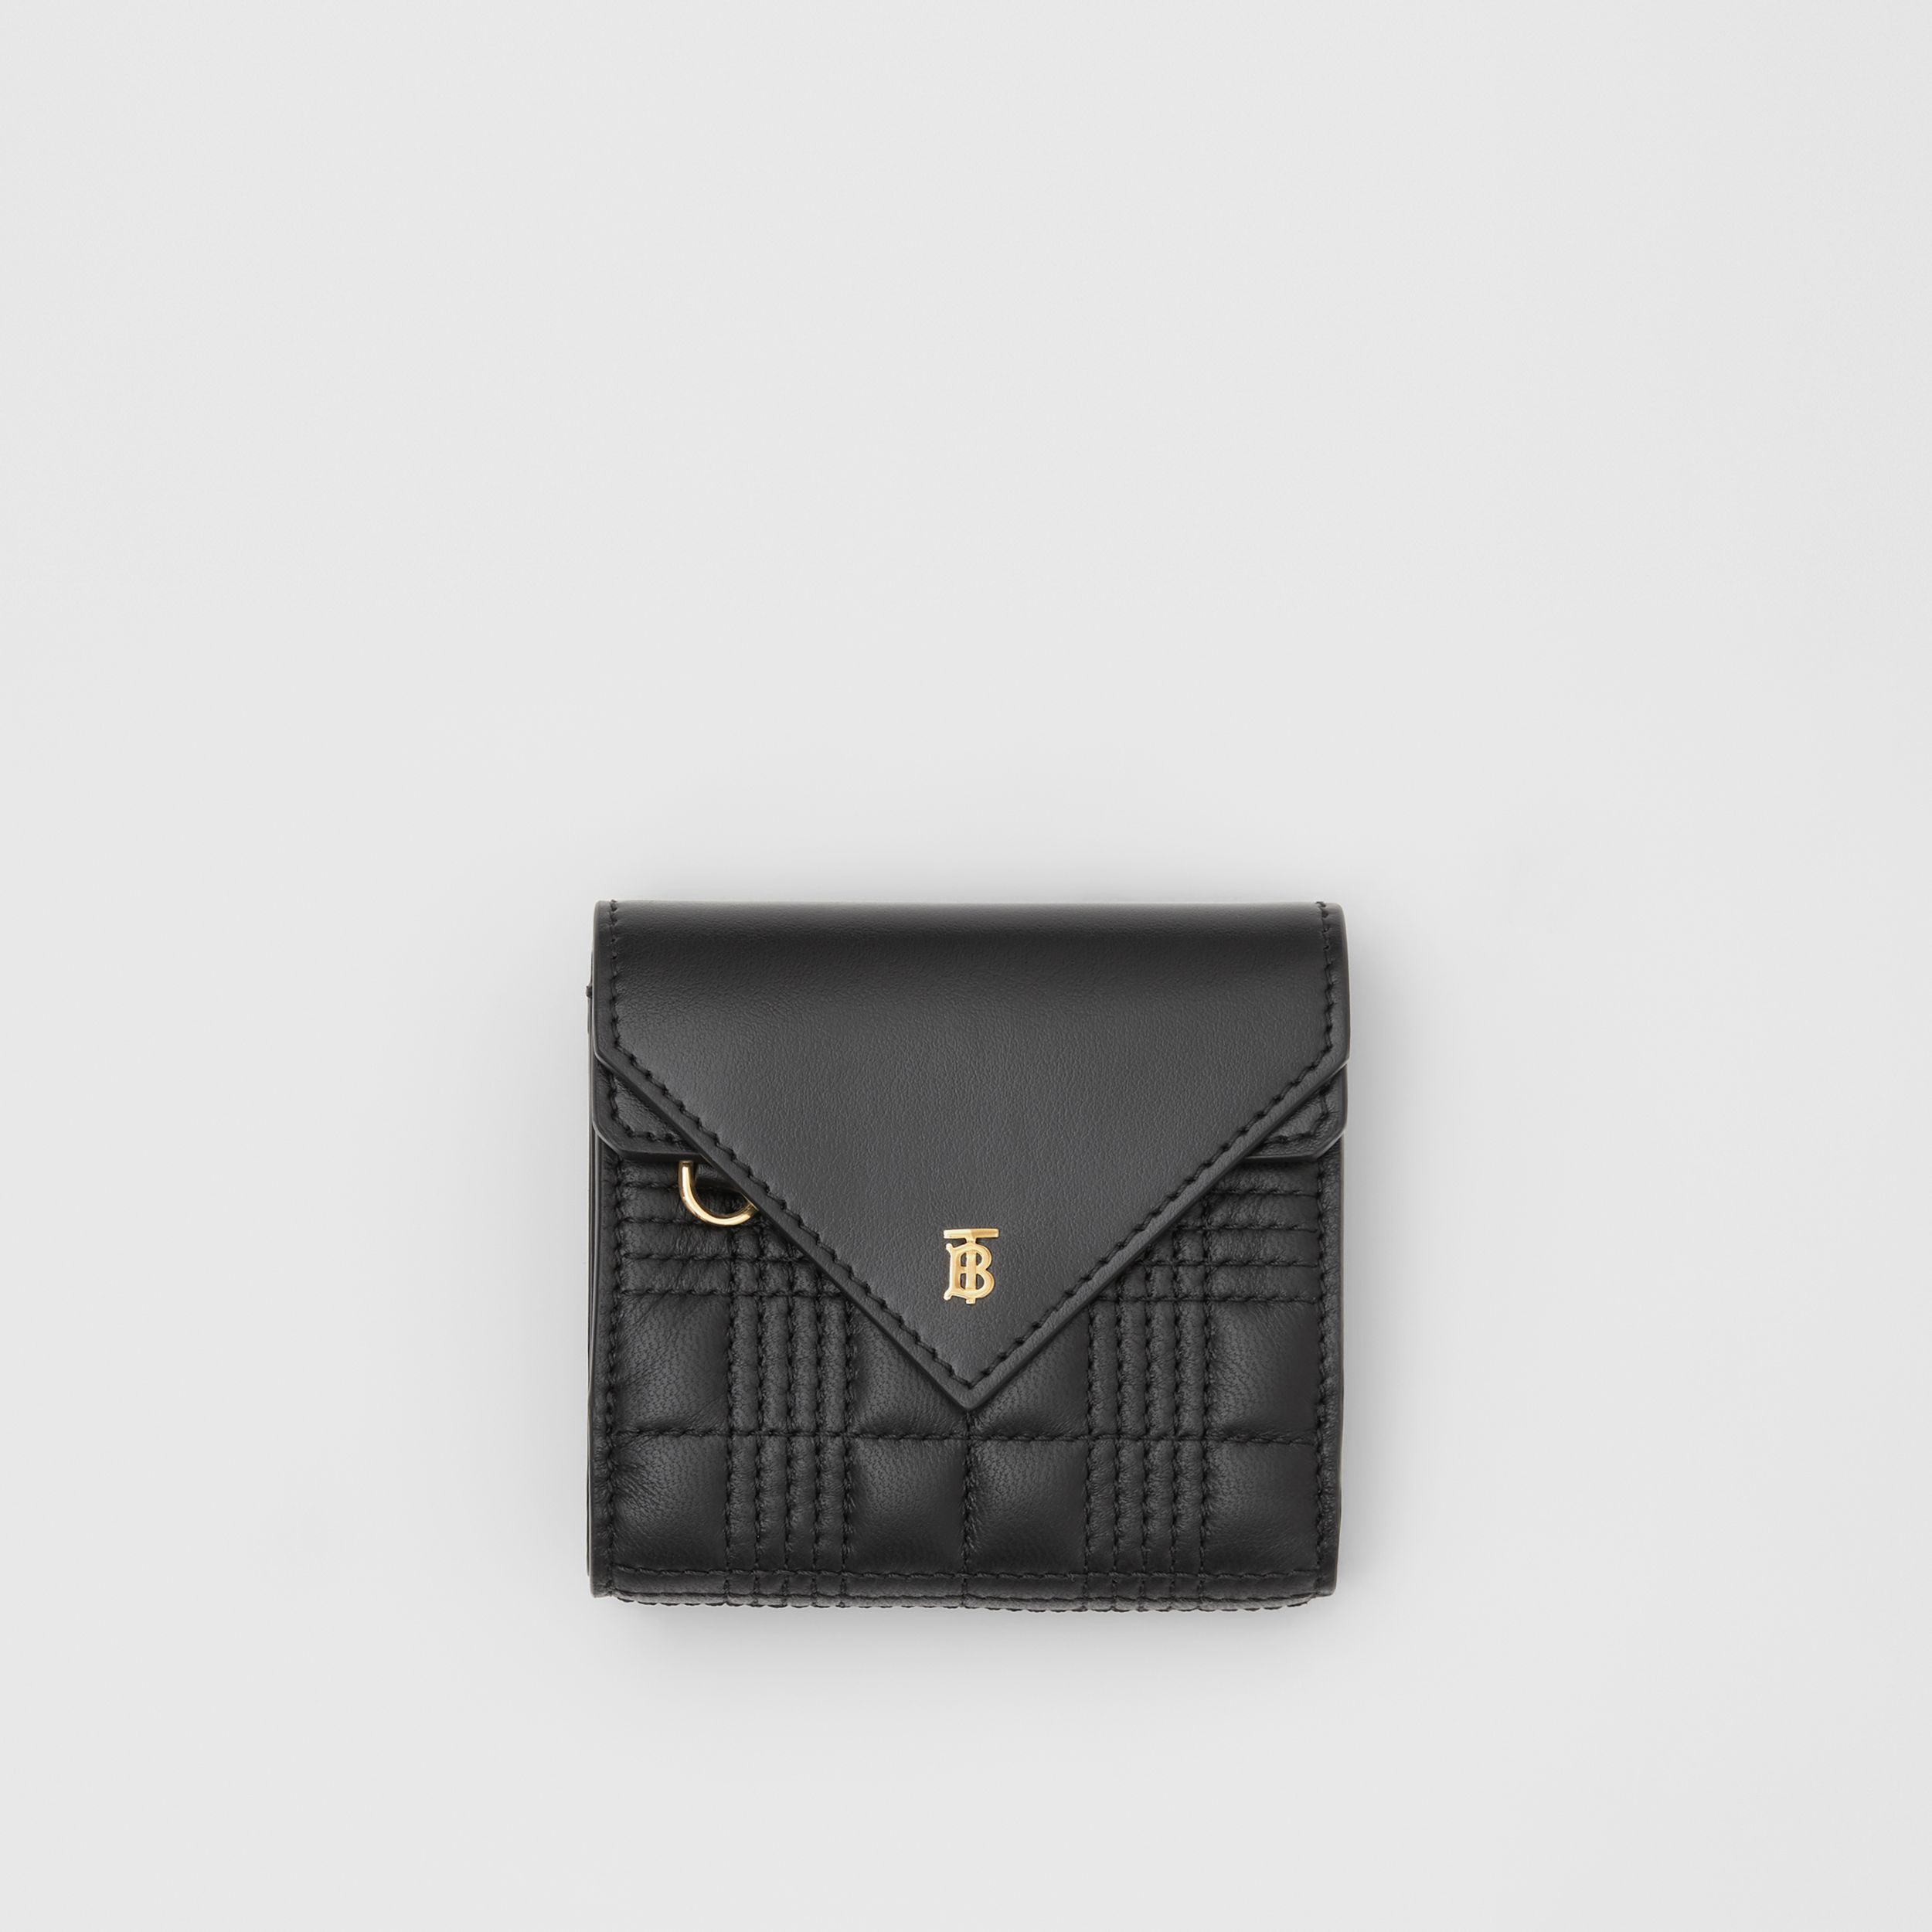 Quilted Lambskin Folding Wallet in Black - Women | Burberry - 1